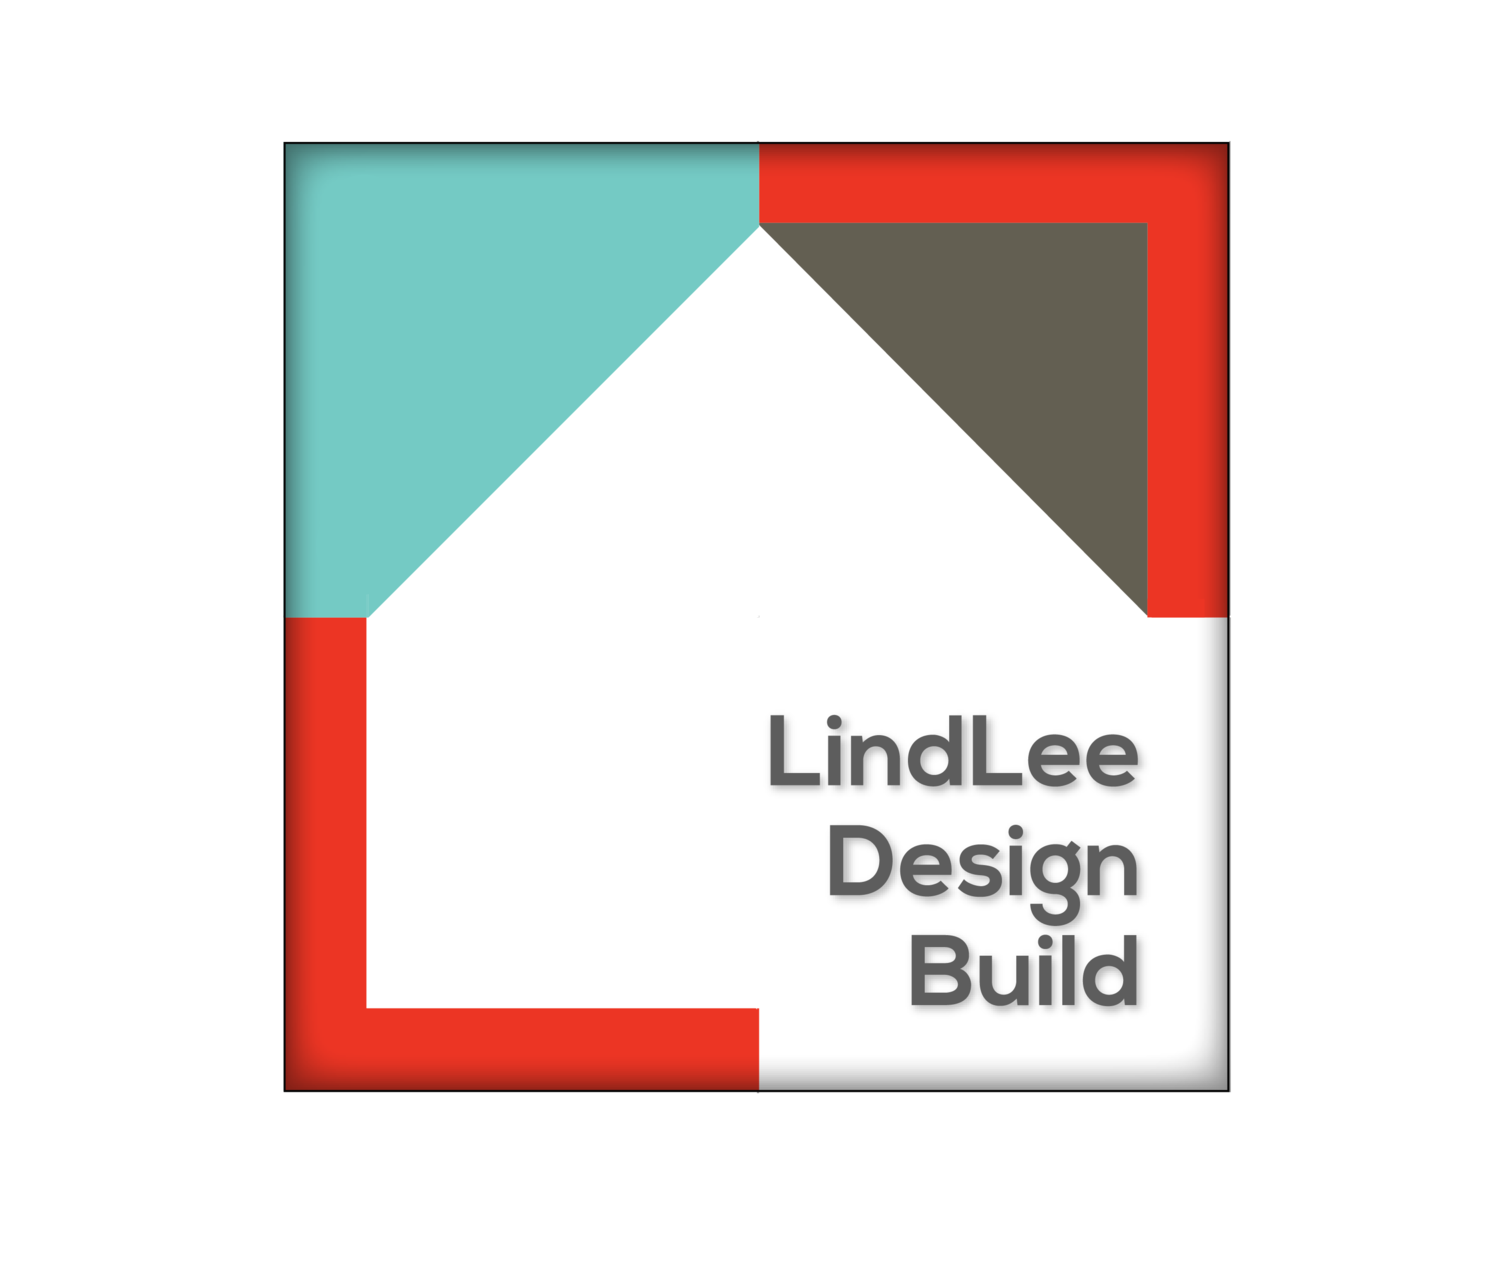 LindLee Design Build